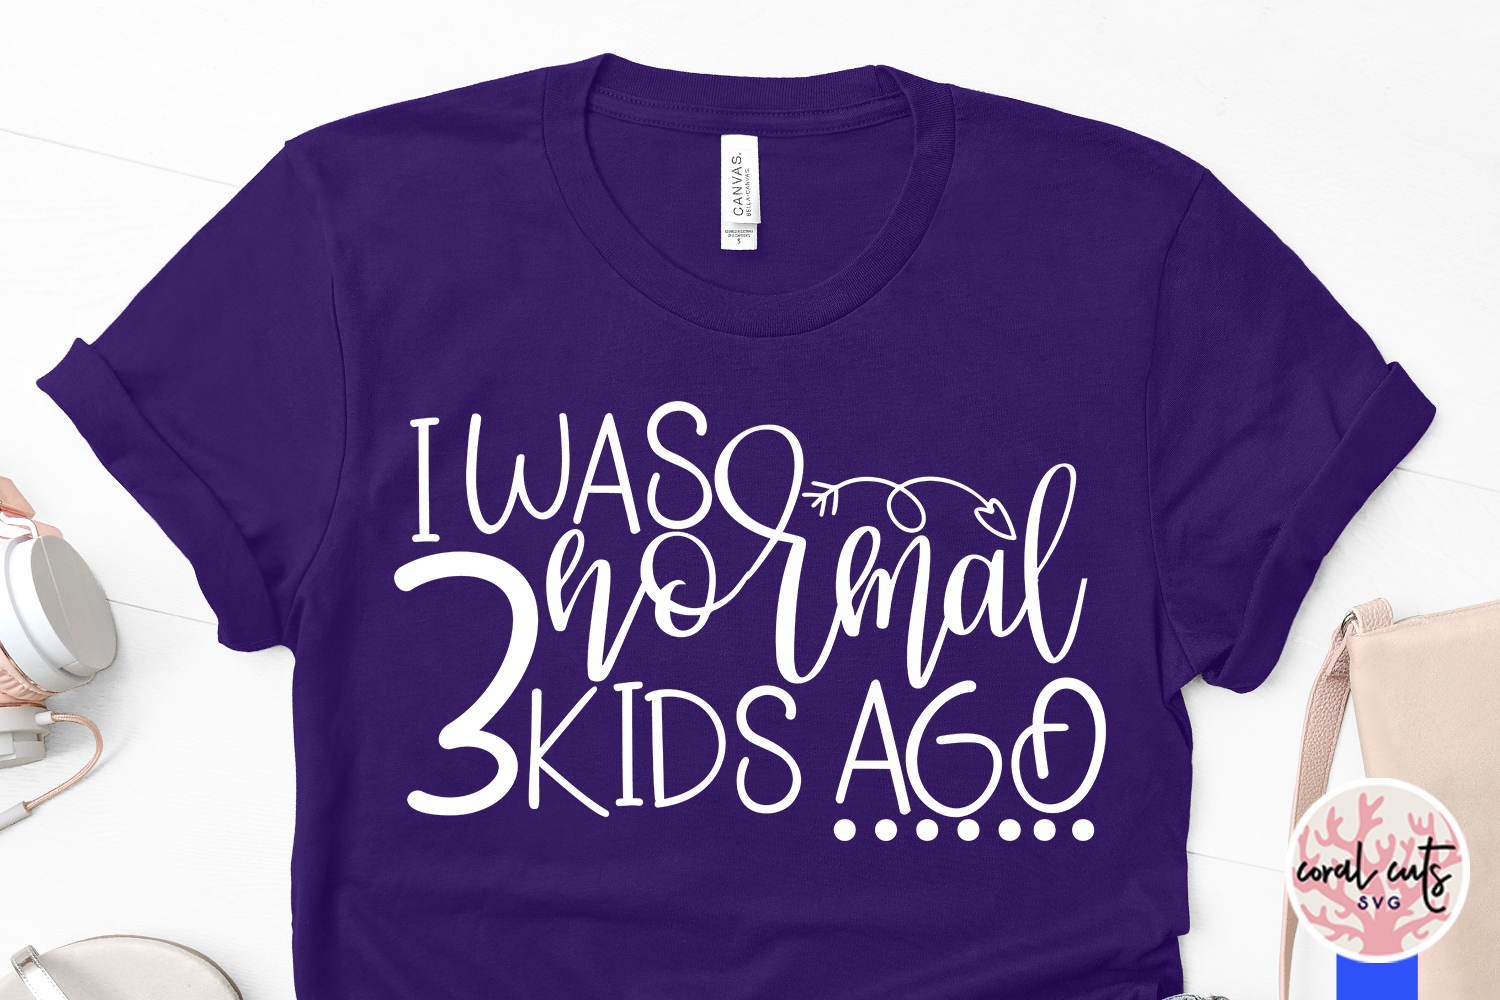 I was normal 3 kids ago - Mother SVG EPS DXF PNG Cut File example image 3